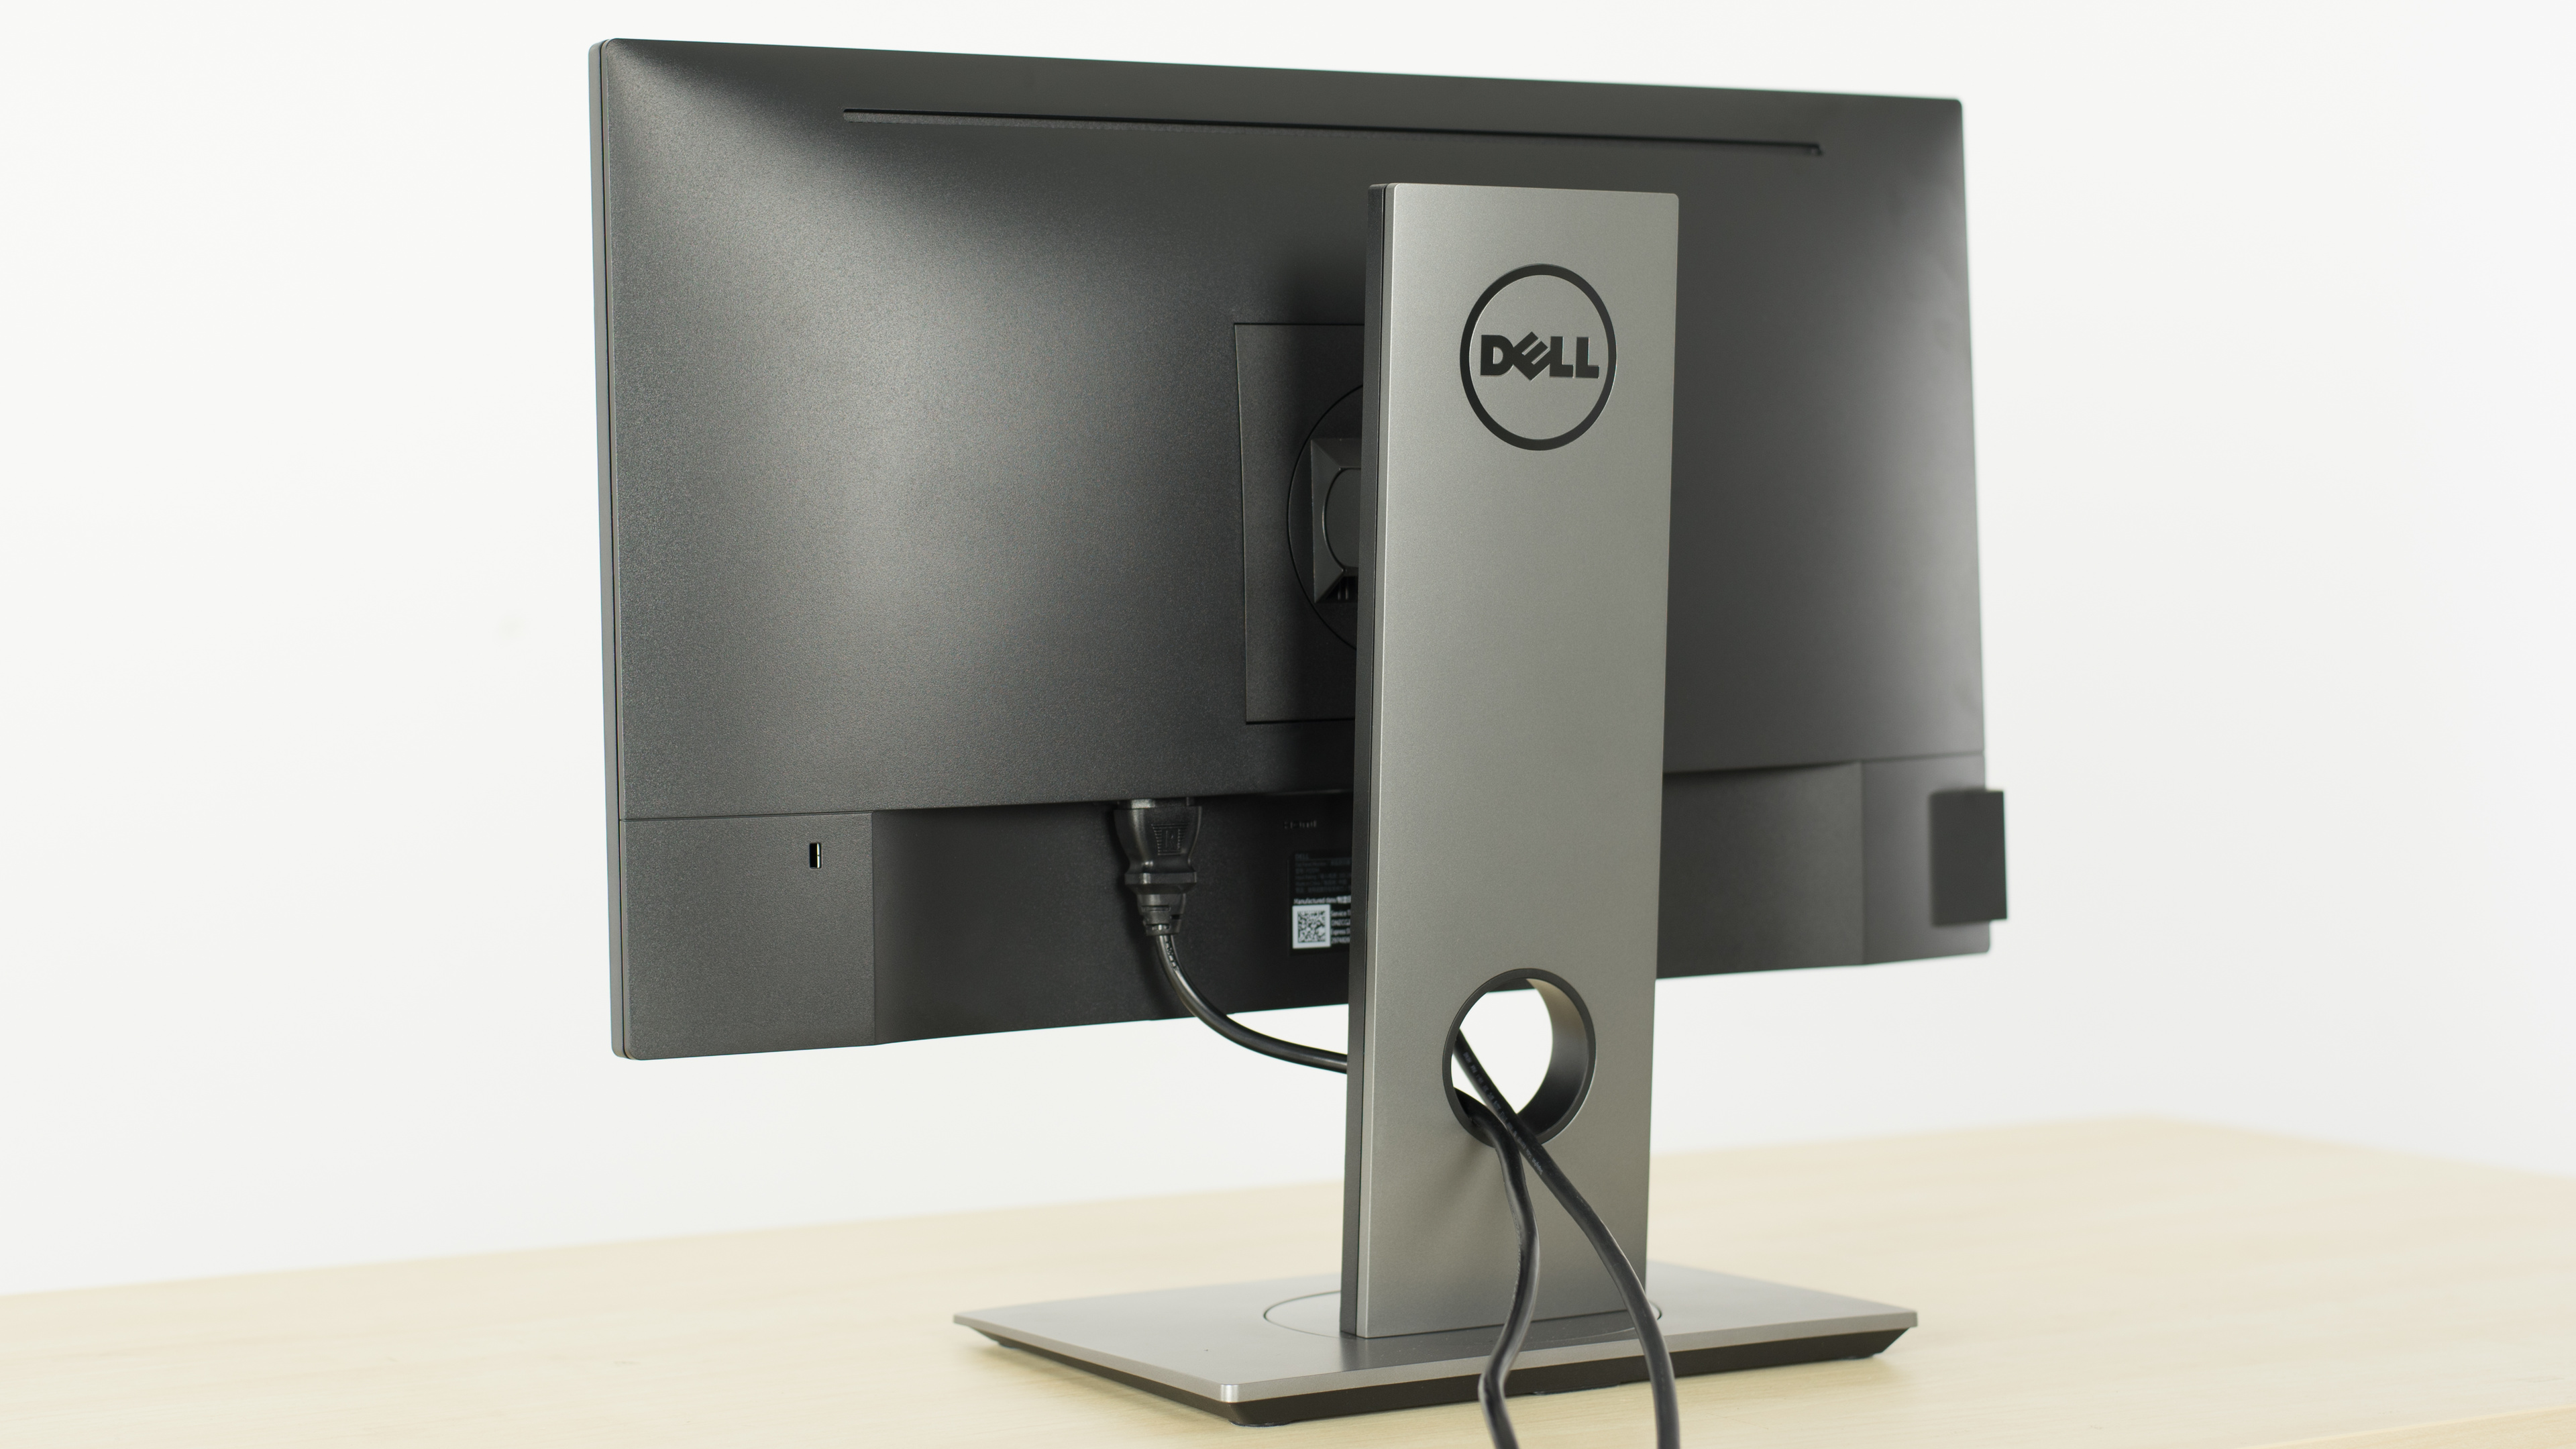 Dell P2217h Review